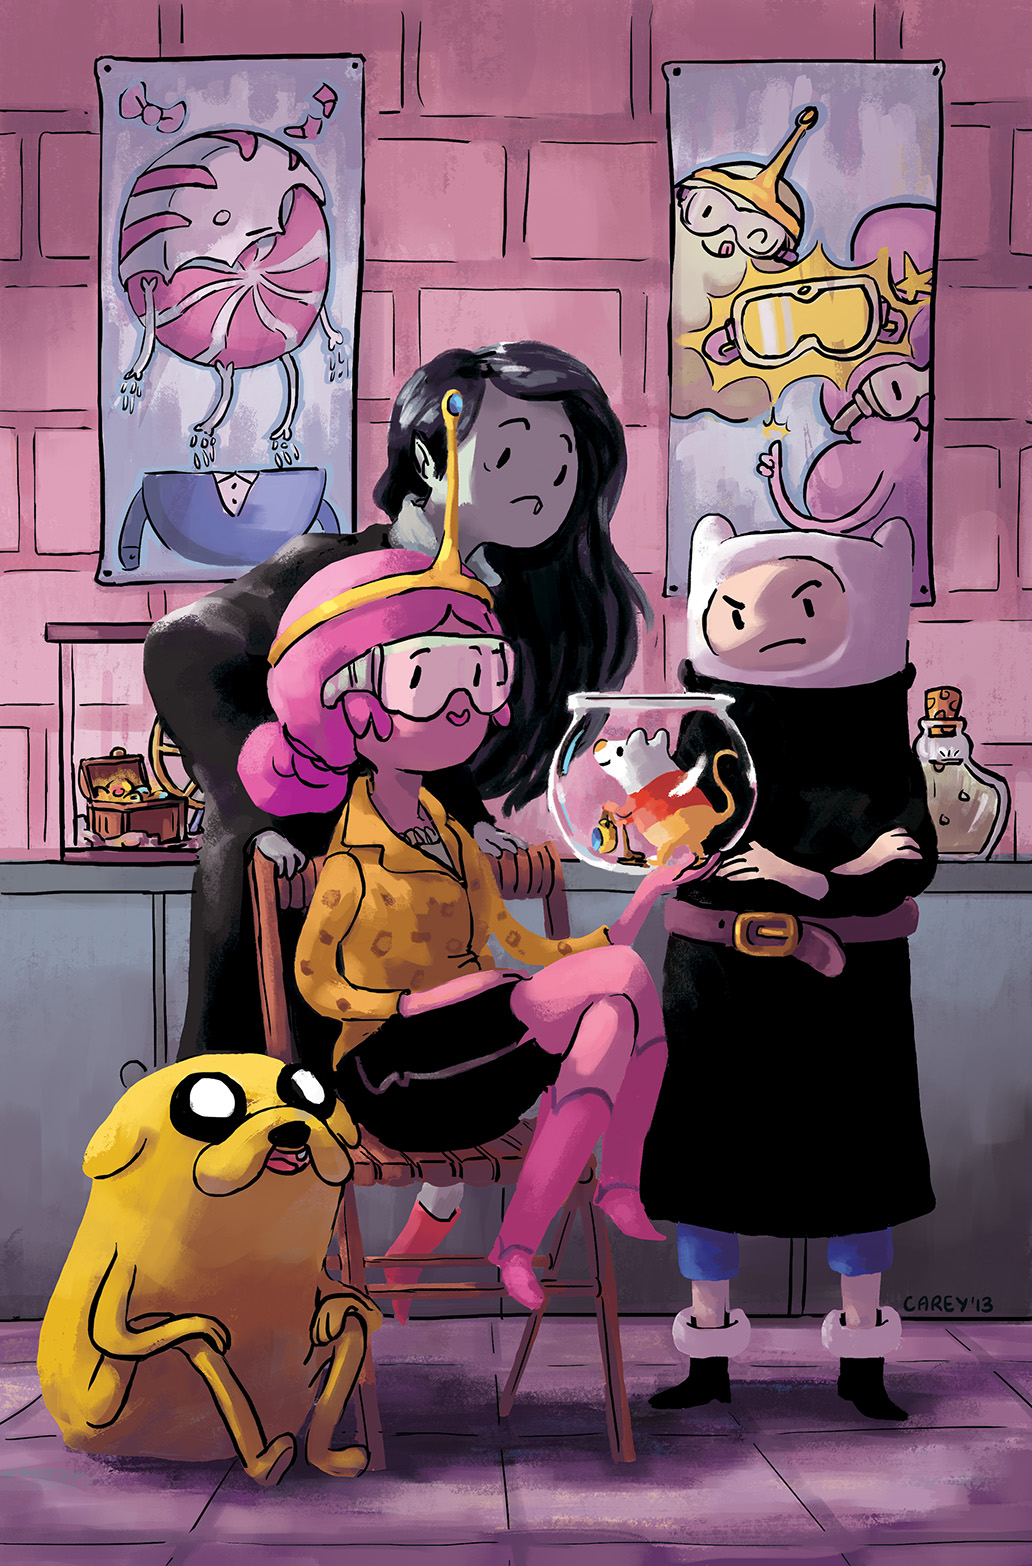 ADVENTURE TIME #29 Cover D by Carey Pietsch